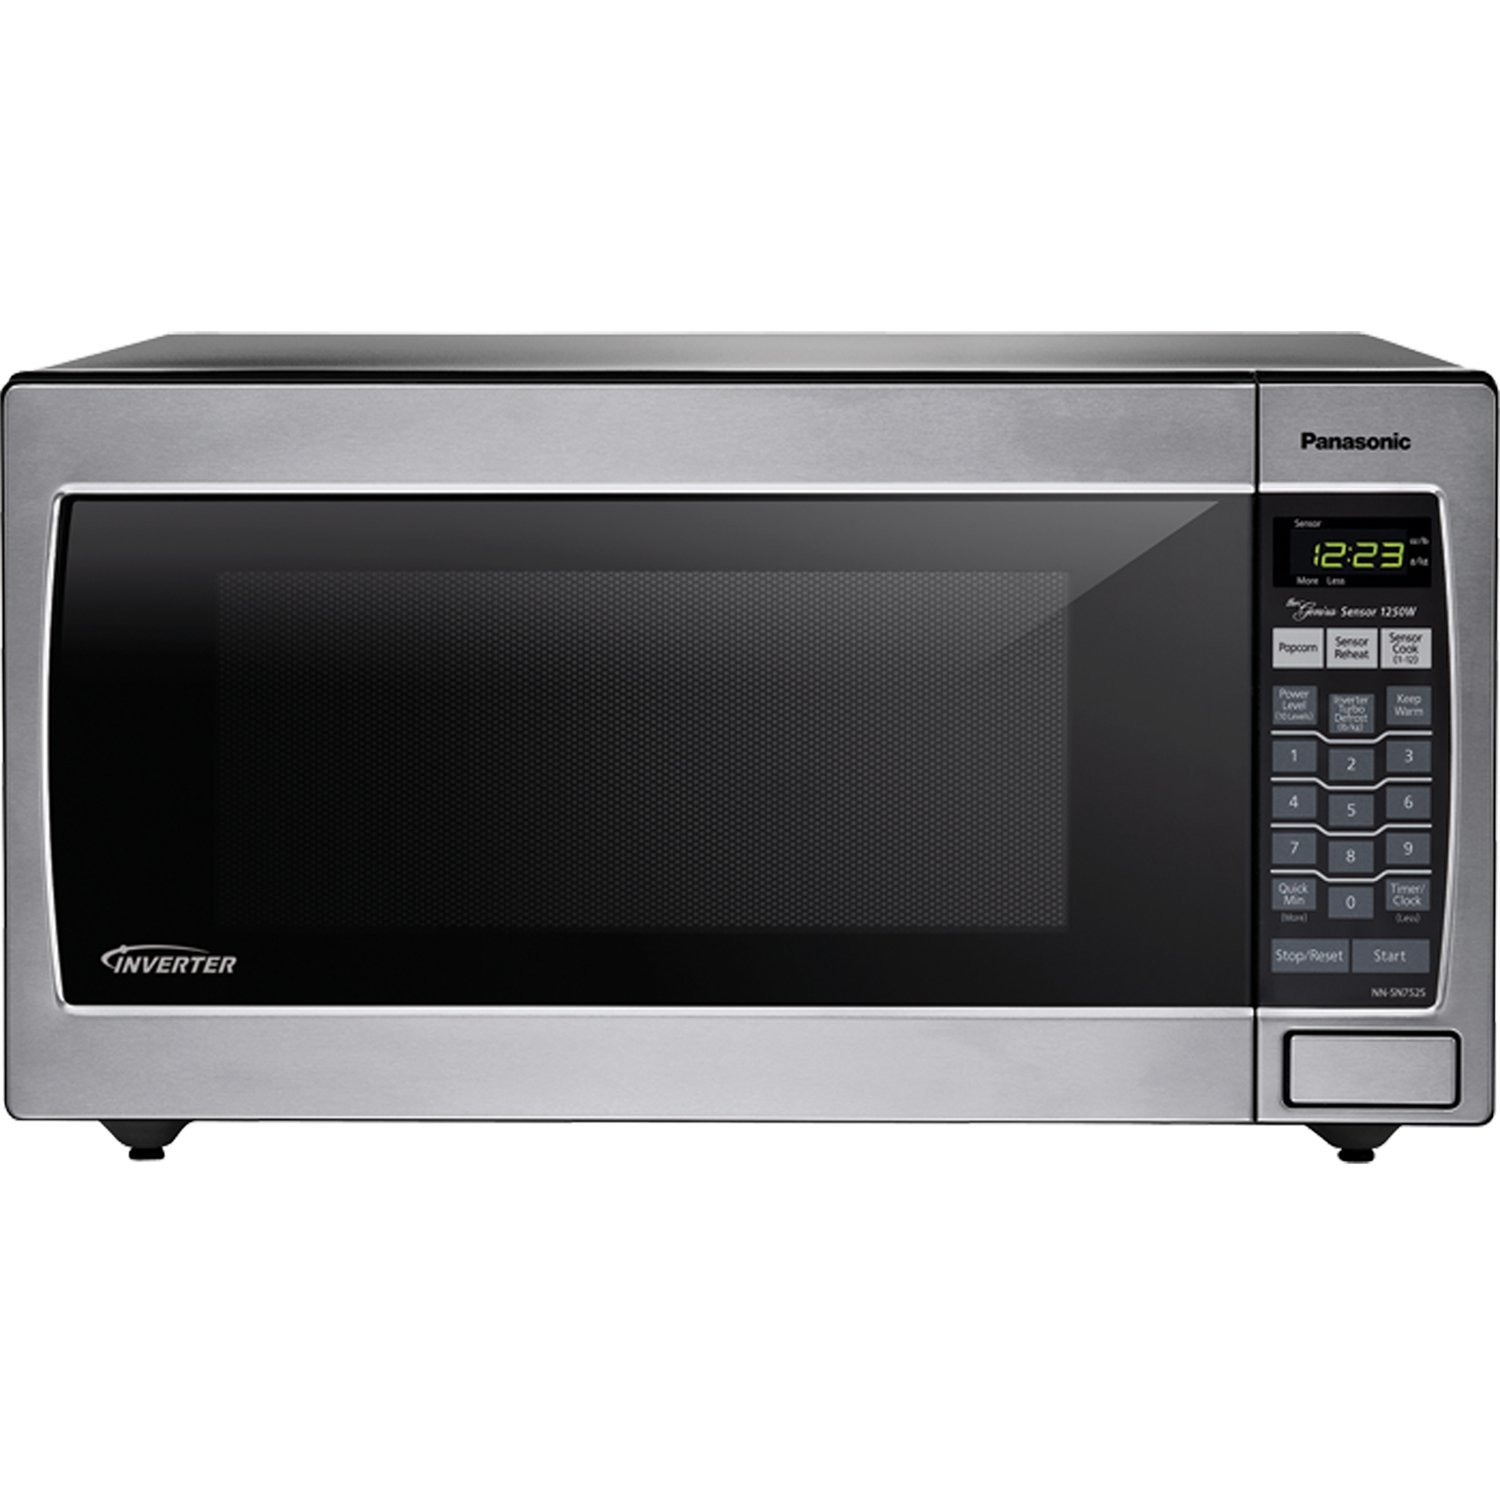 Panasonic Nn Sn752s Stainless 1250w 1 6 Cu Ft Countertop Microwave Oven With Inverter Technology Free Image